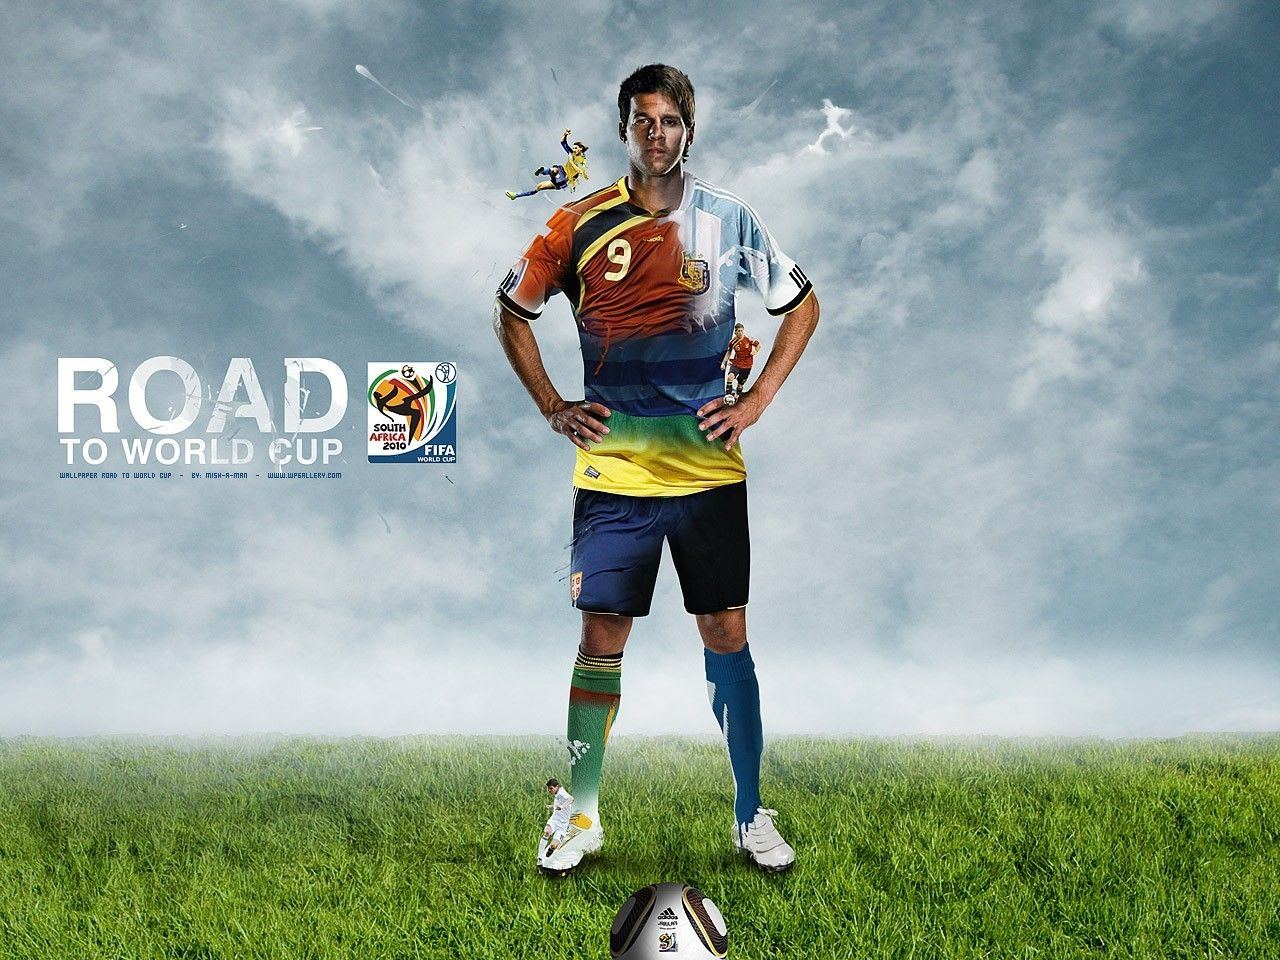 Soccer Wallpaper en newwallpaperdownload.com